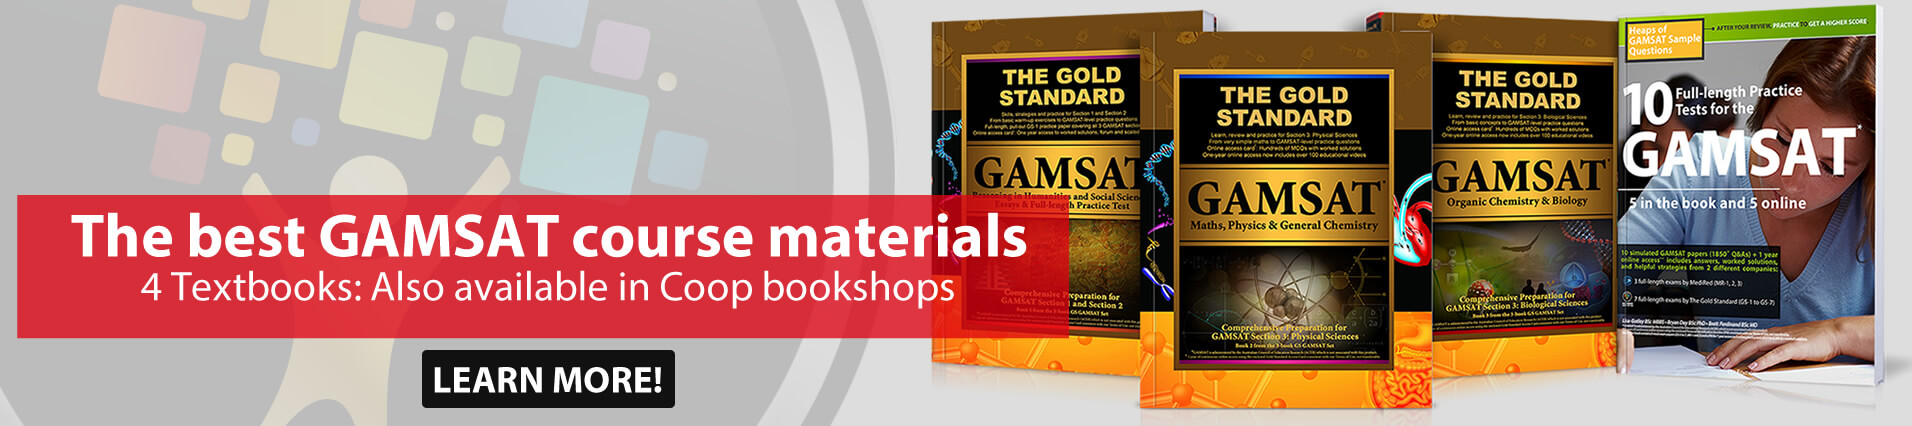 GAMSAT Textbooks